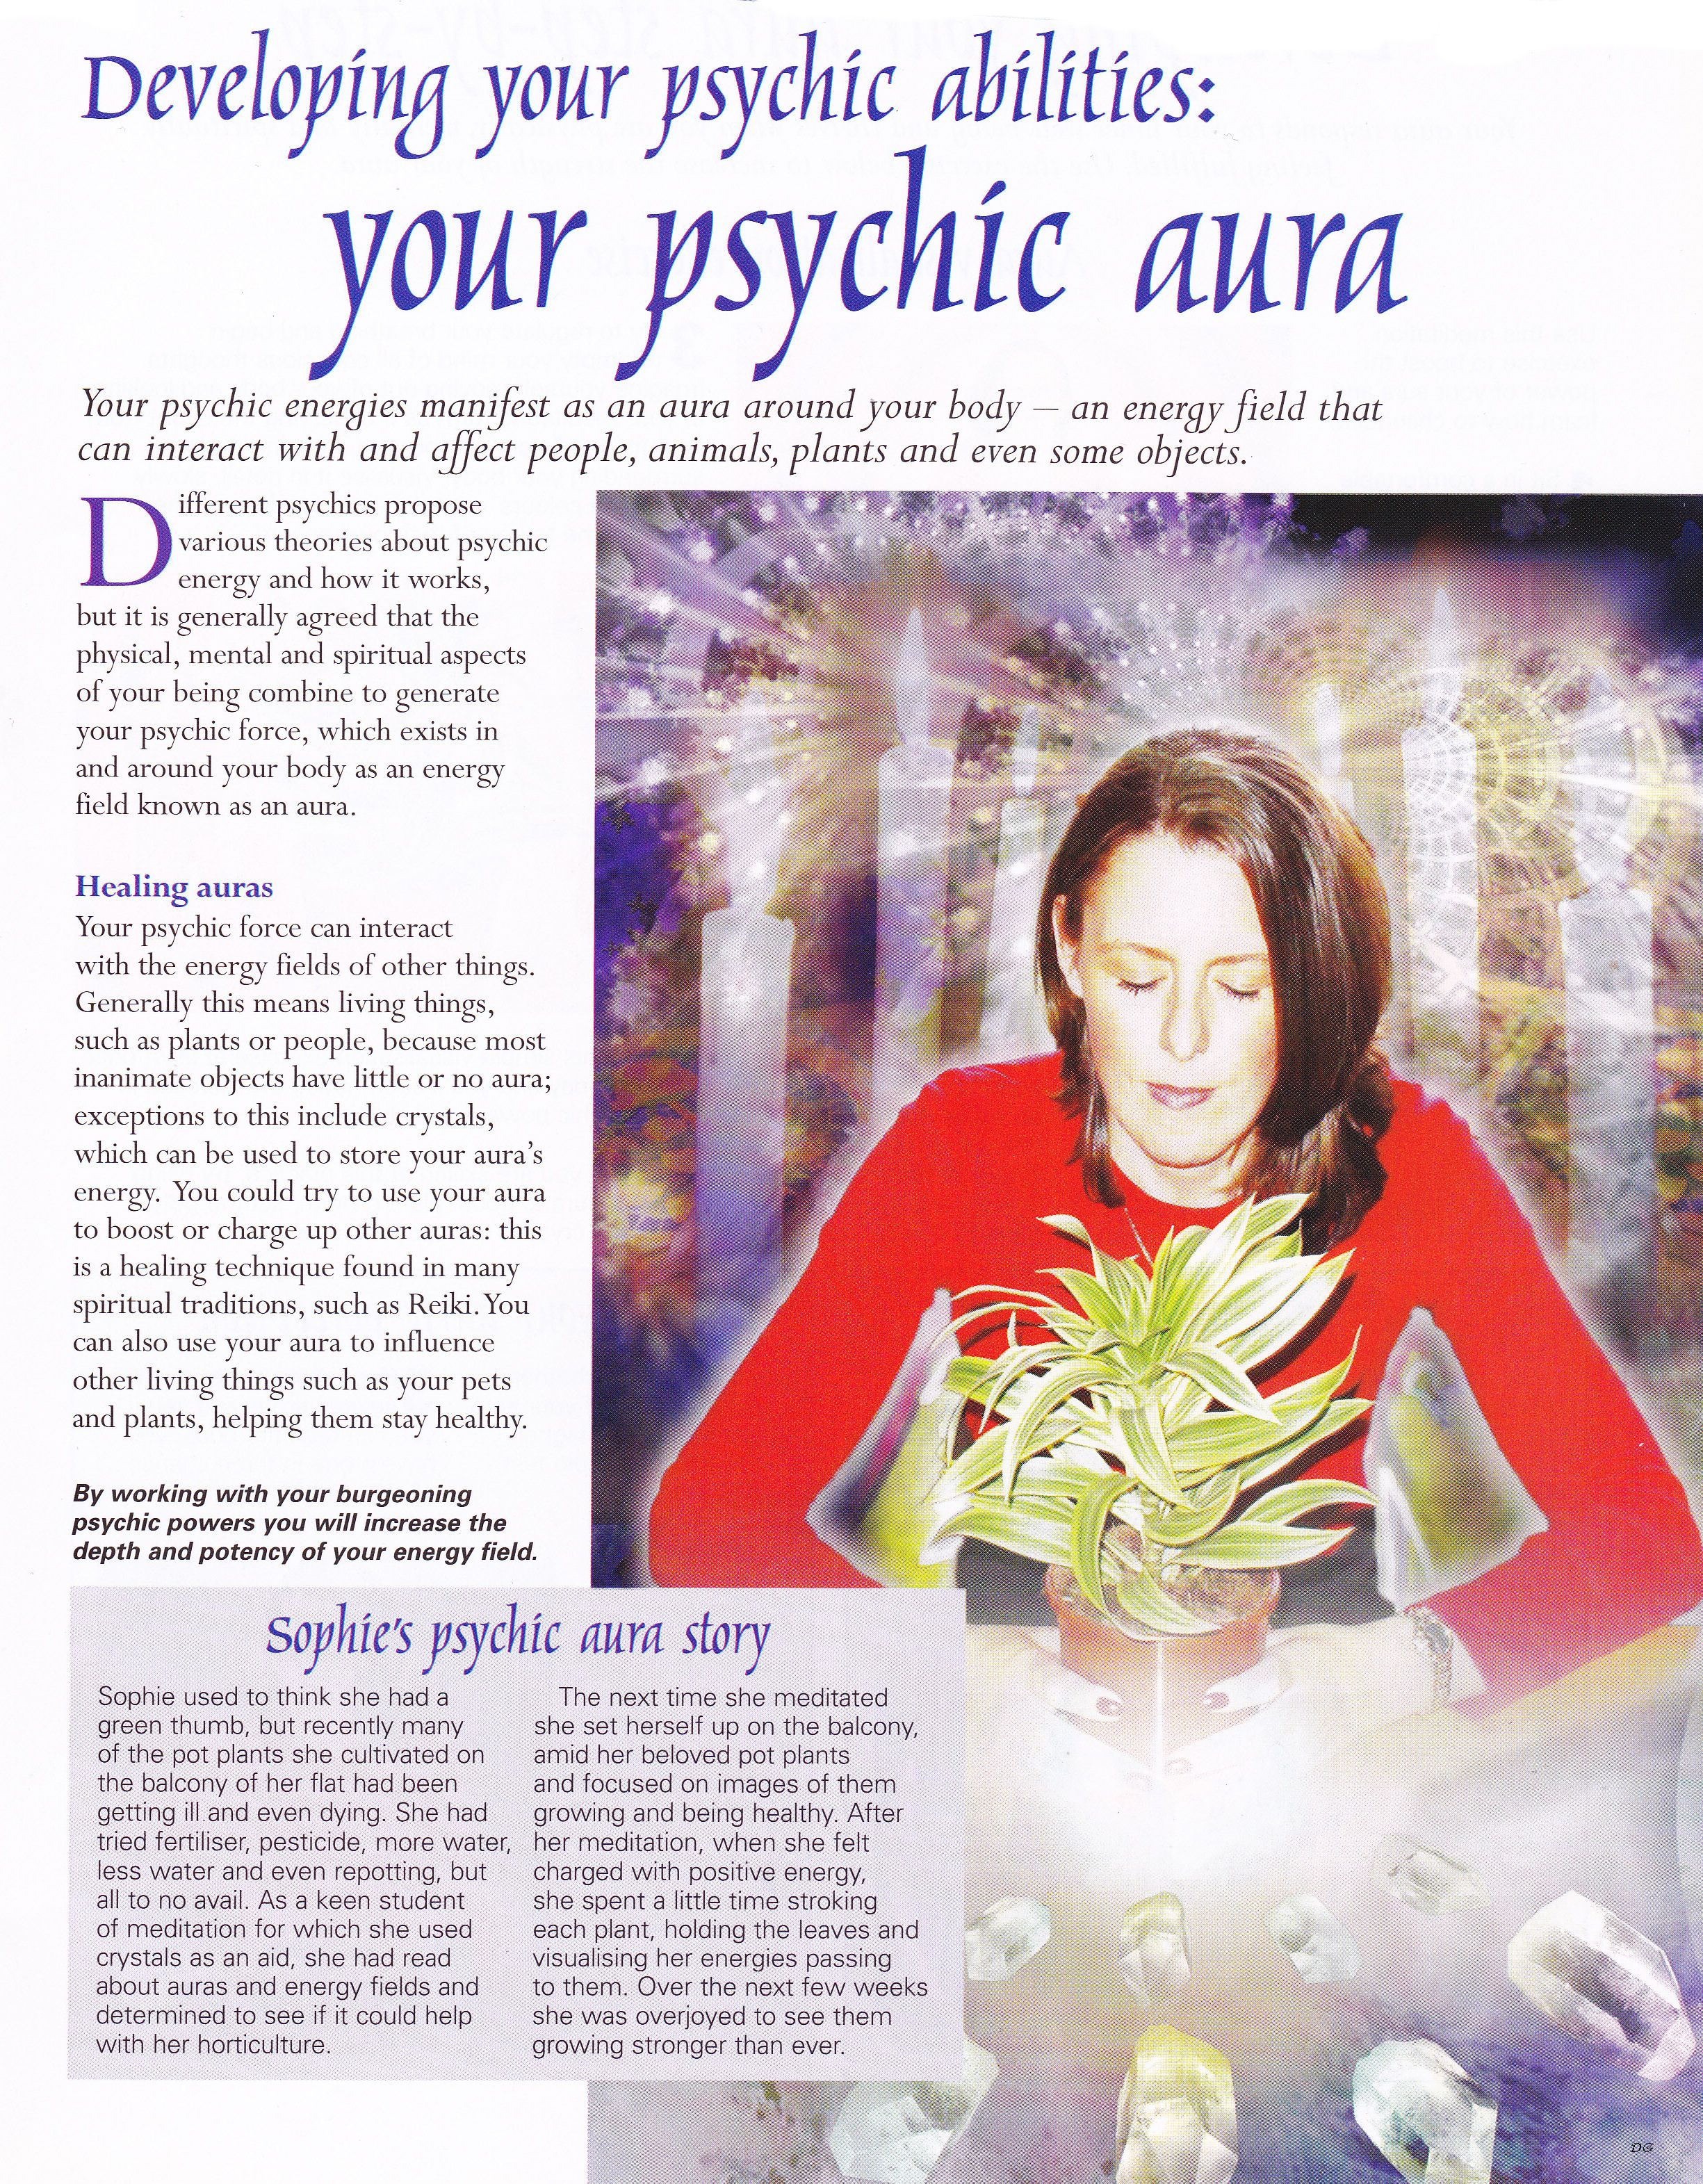 Developing Your Psychic Abilities Your Psychic Aura. Sport Administration Major Image Video Maker. Criminal Justice Classes Colorado Seo Company. Physical Education Online Degree. Manor Care North York Pa Columbus Ad Agencies. United States Visa Services App Creator App. Different Types Of Software License. Hot Water Immersion Heater A Dance Of Dragons. Center On Addiction And Substance Abuse